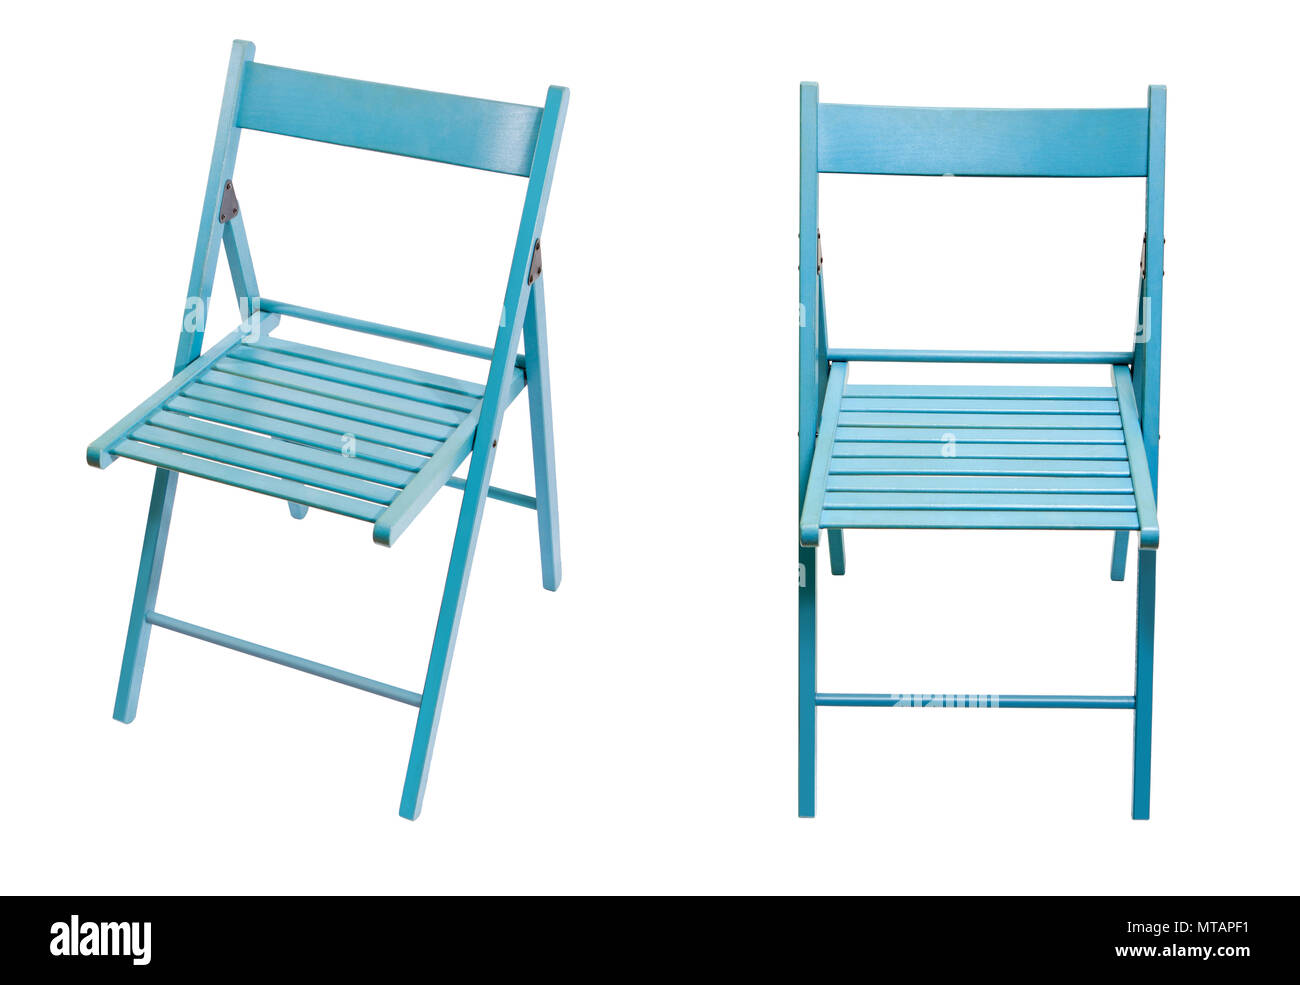 Folding Wooden Chairs Wooden Folding Chair Wooden Chair Blue A Chair Made Of Wood From